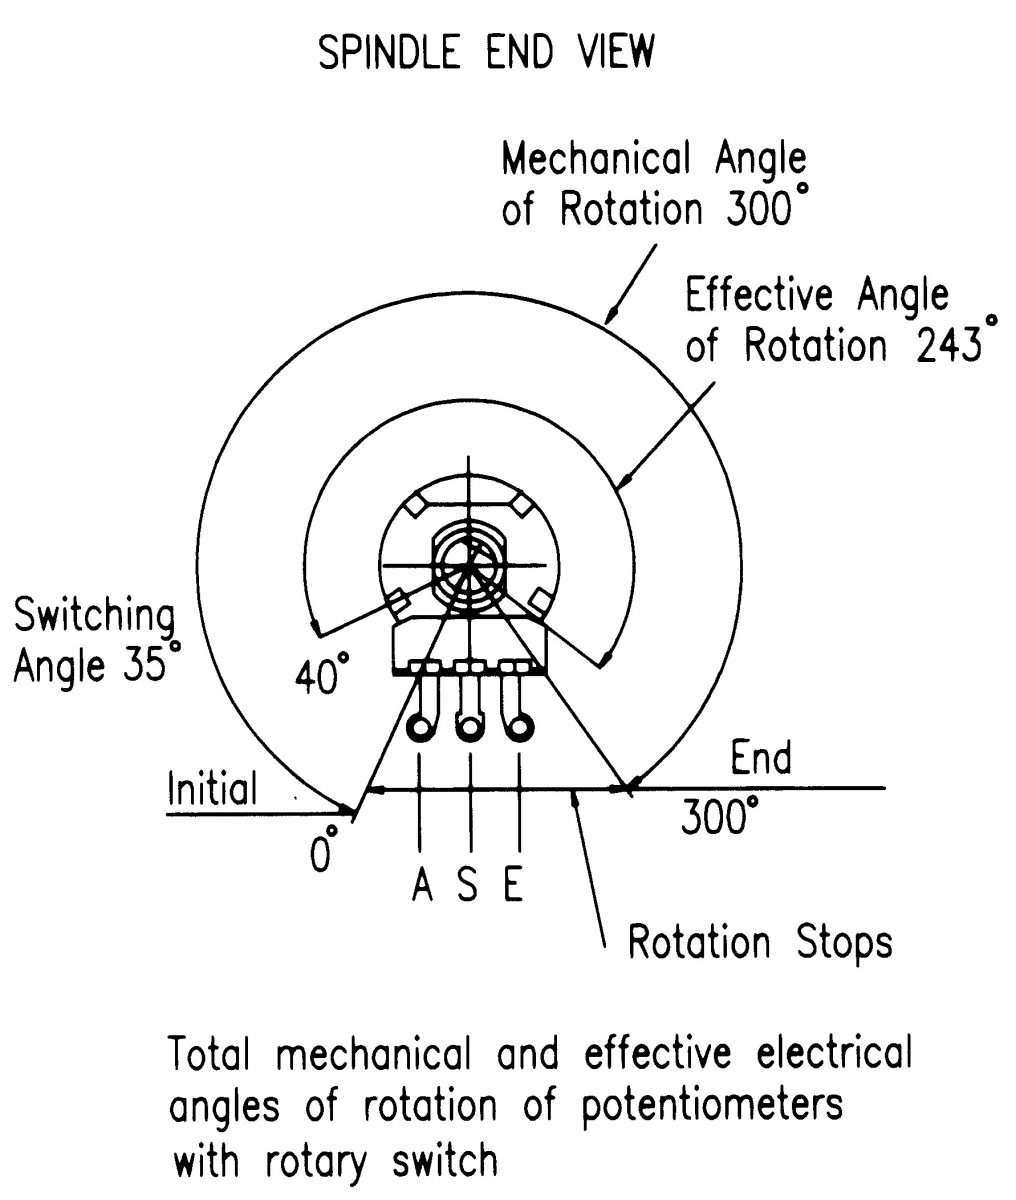 potentiometer switch Double Light Switch Diagram p20 rotary switch angles of rotation